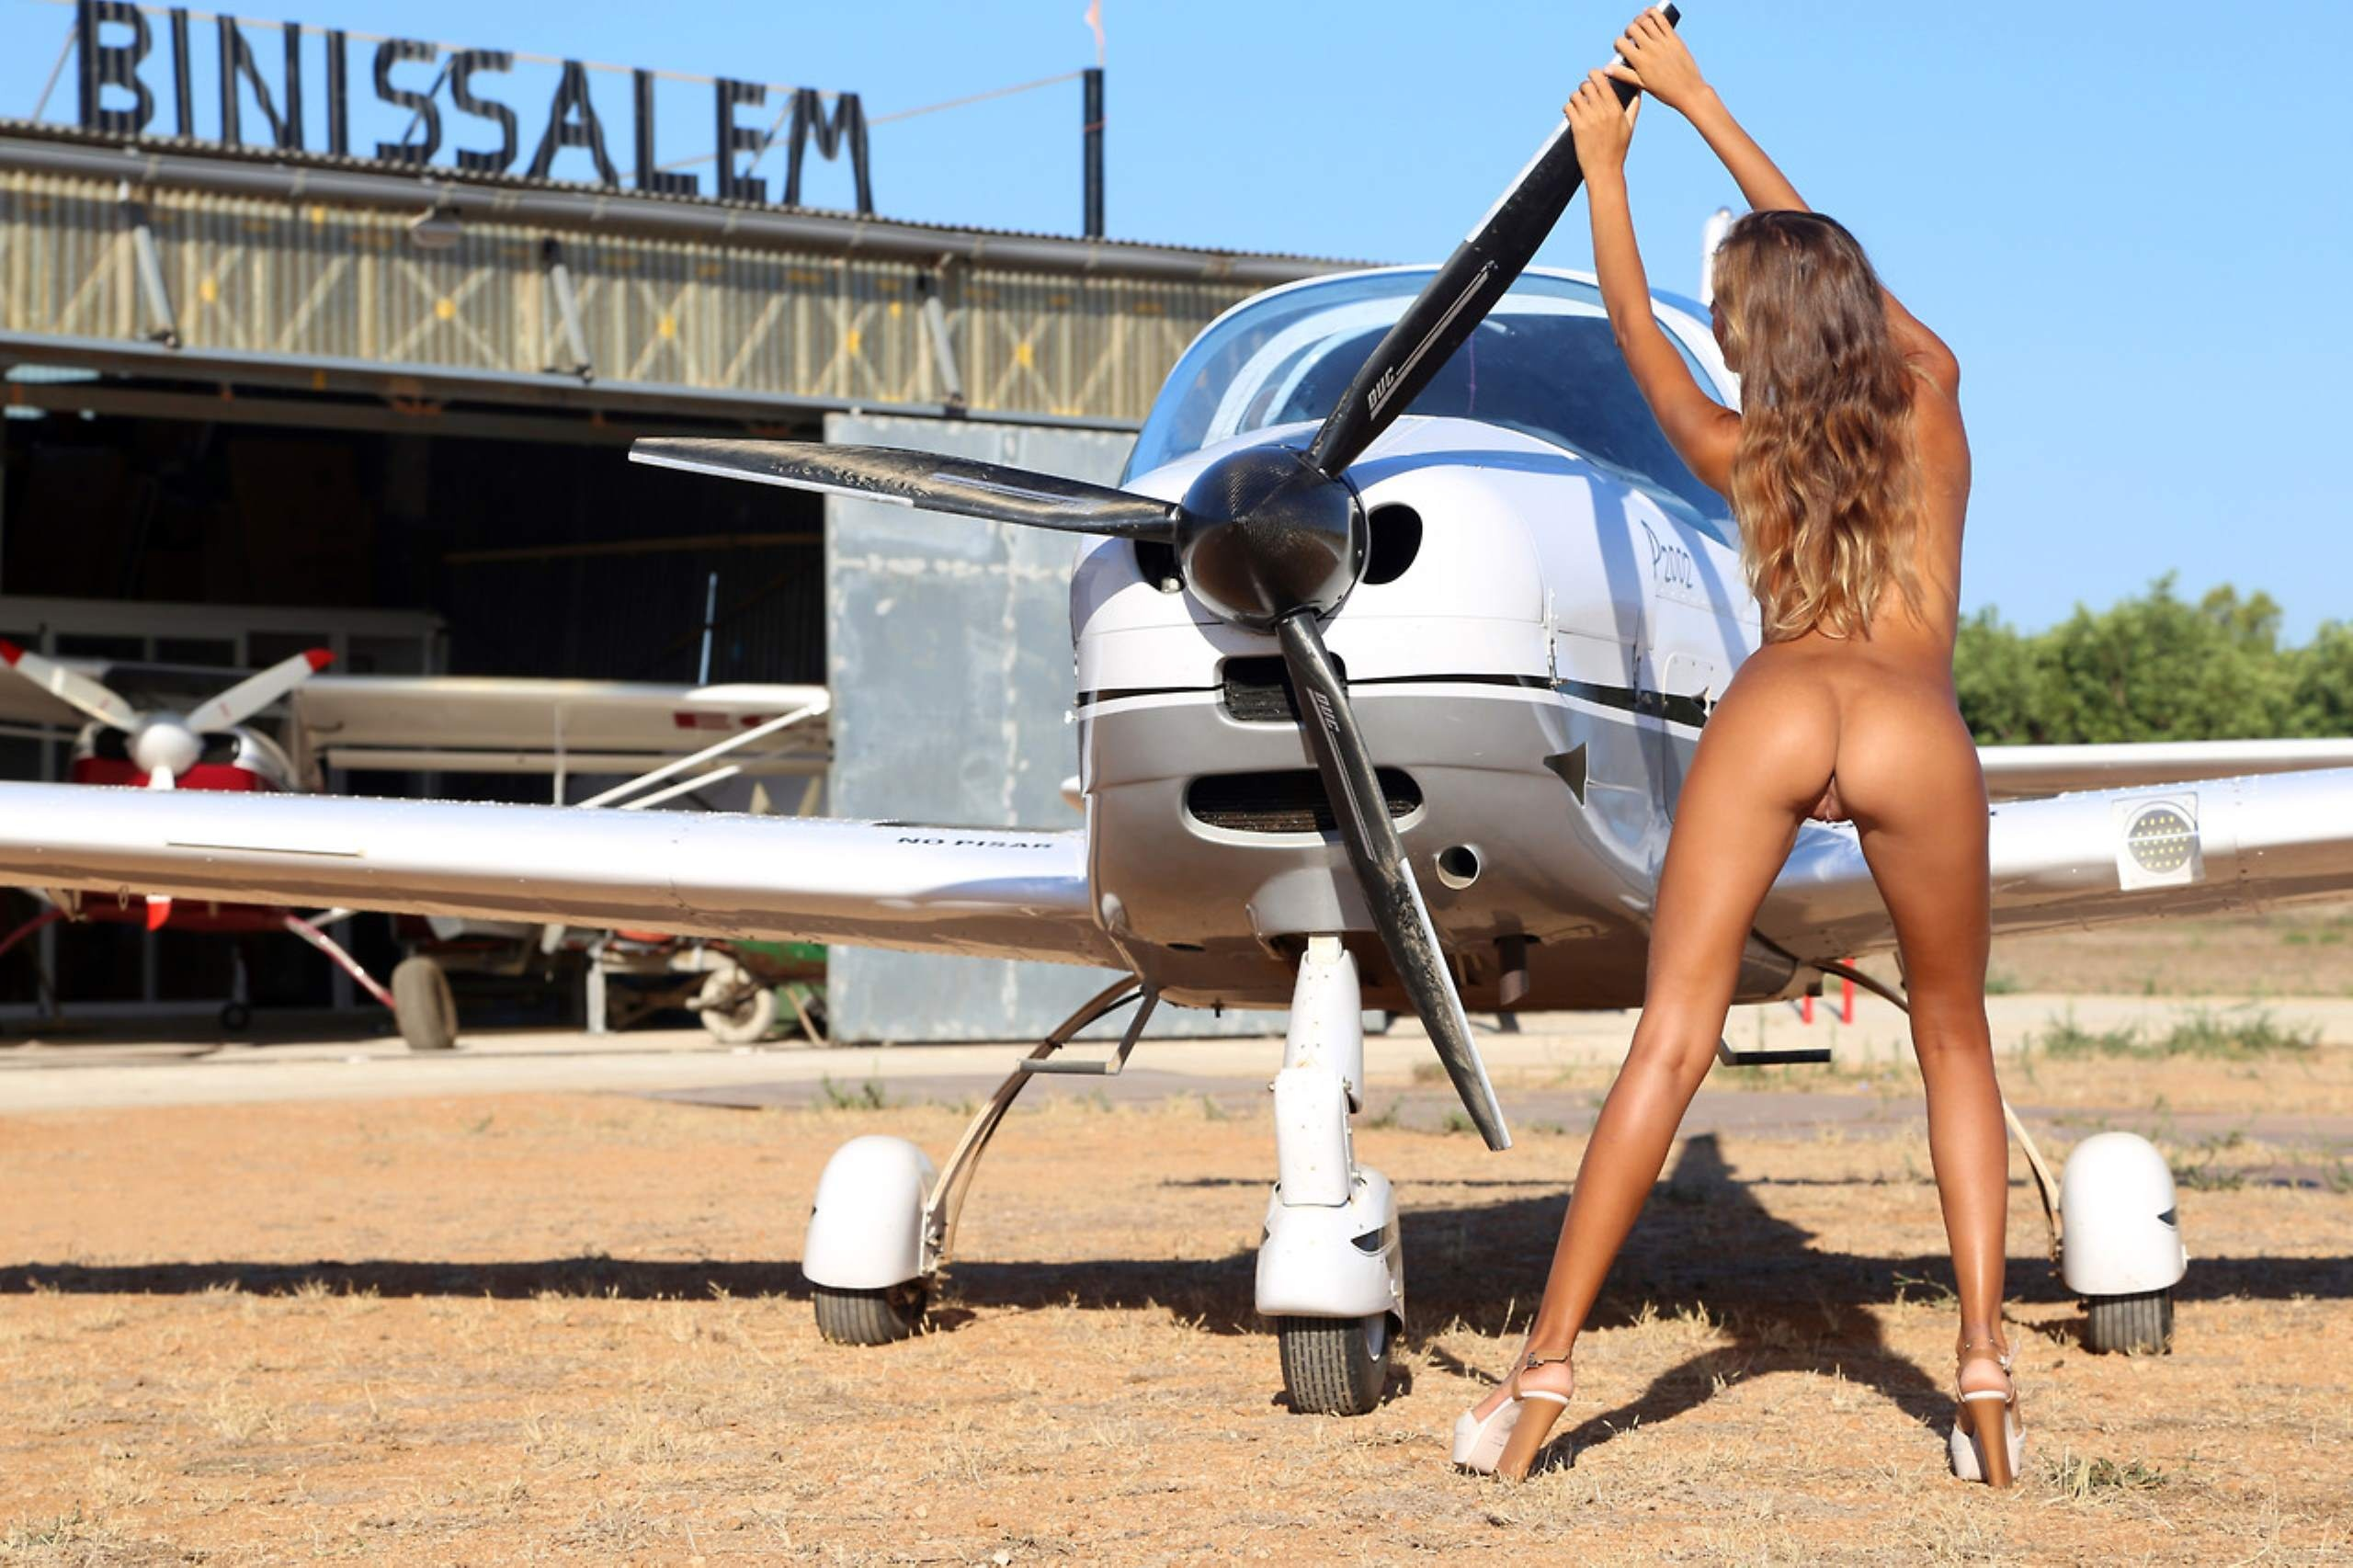 Nude airport pussy